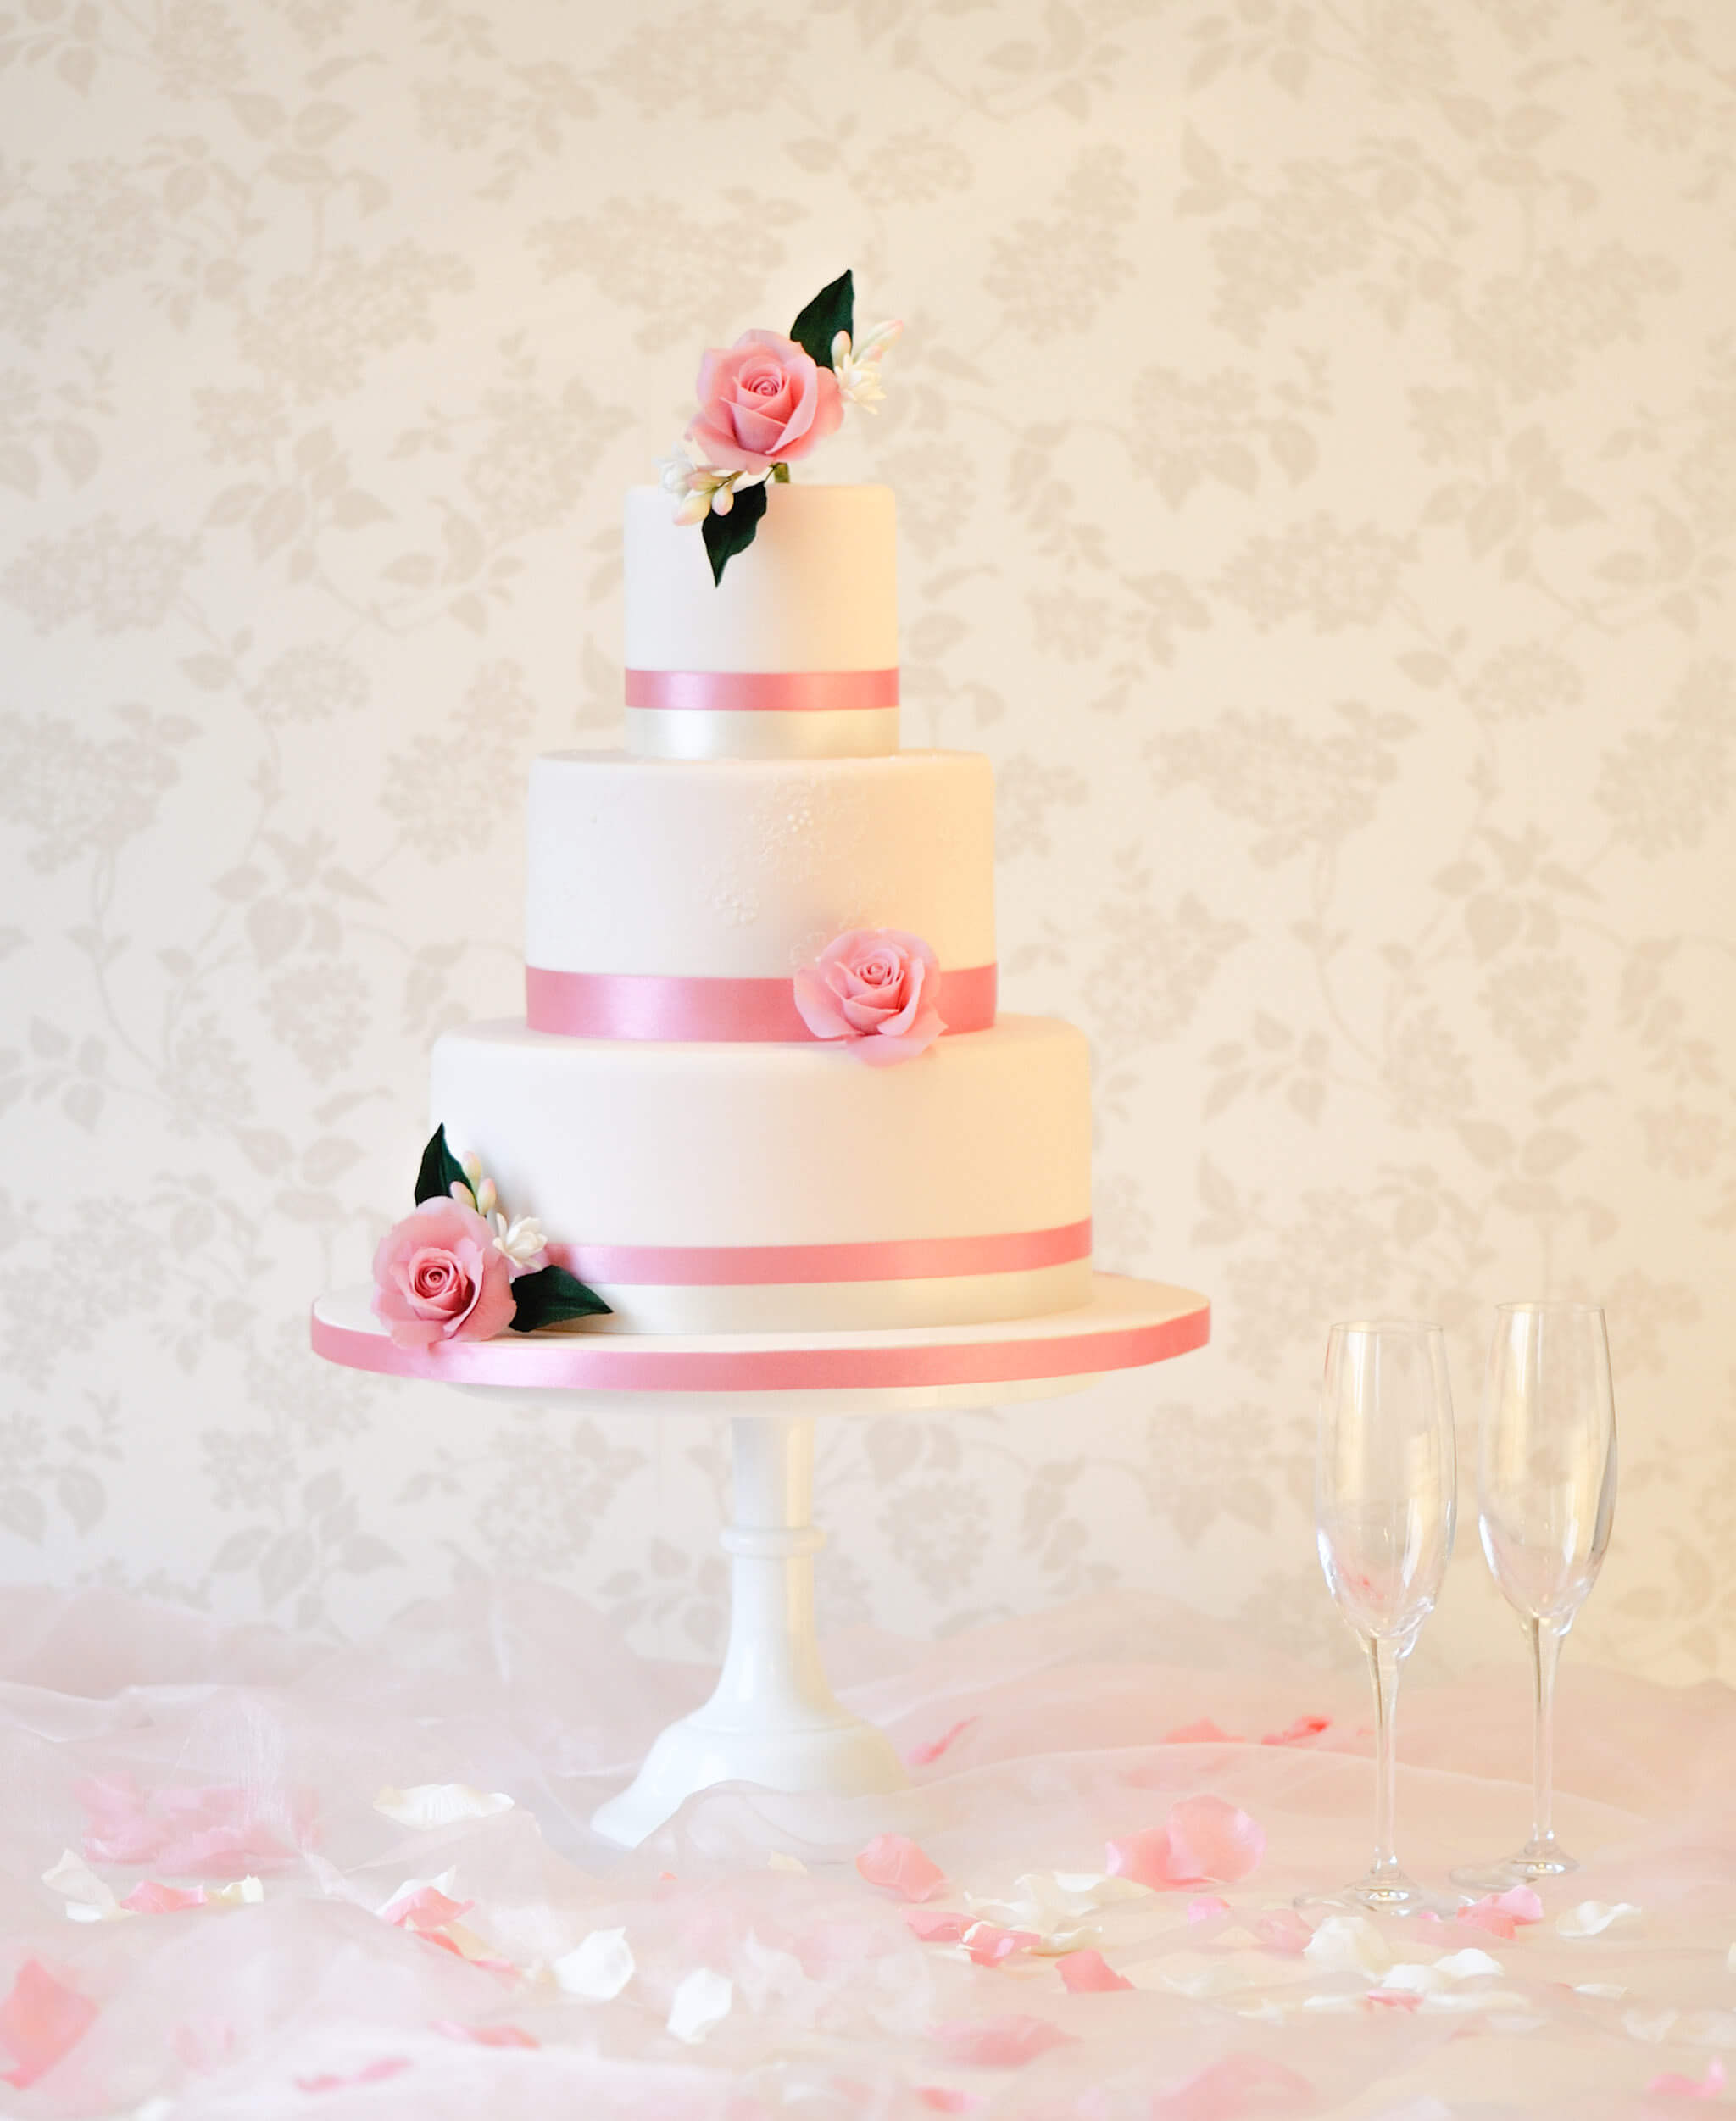 classic wedding cake with pink ribbons